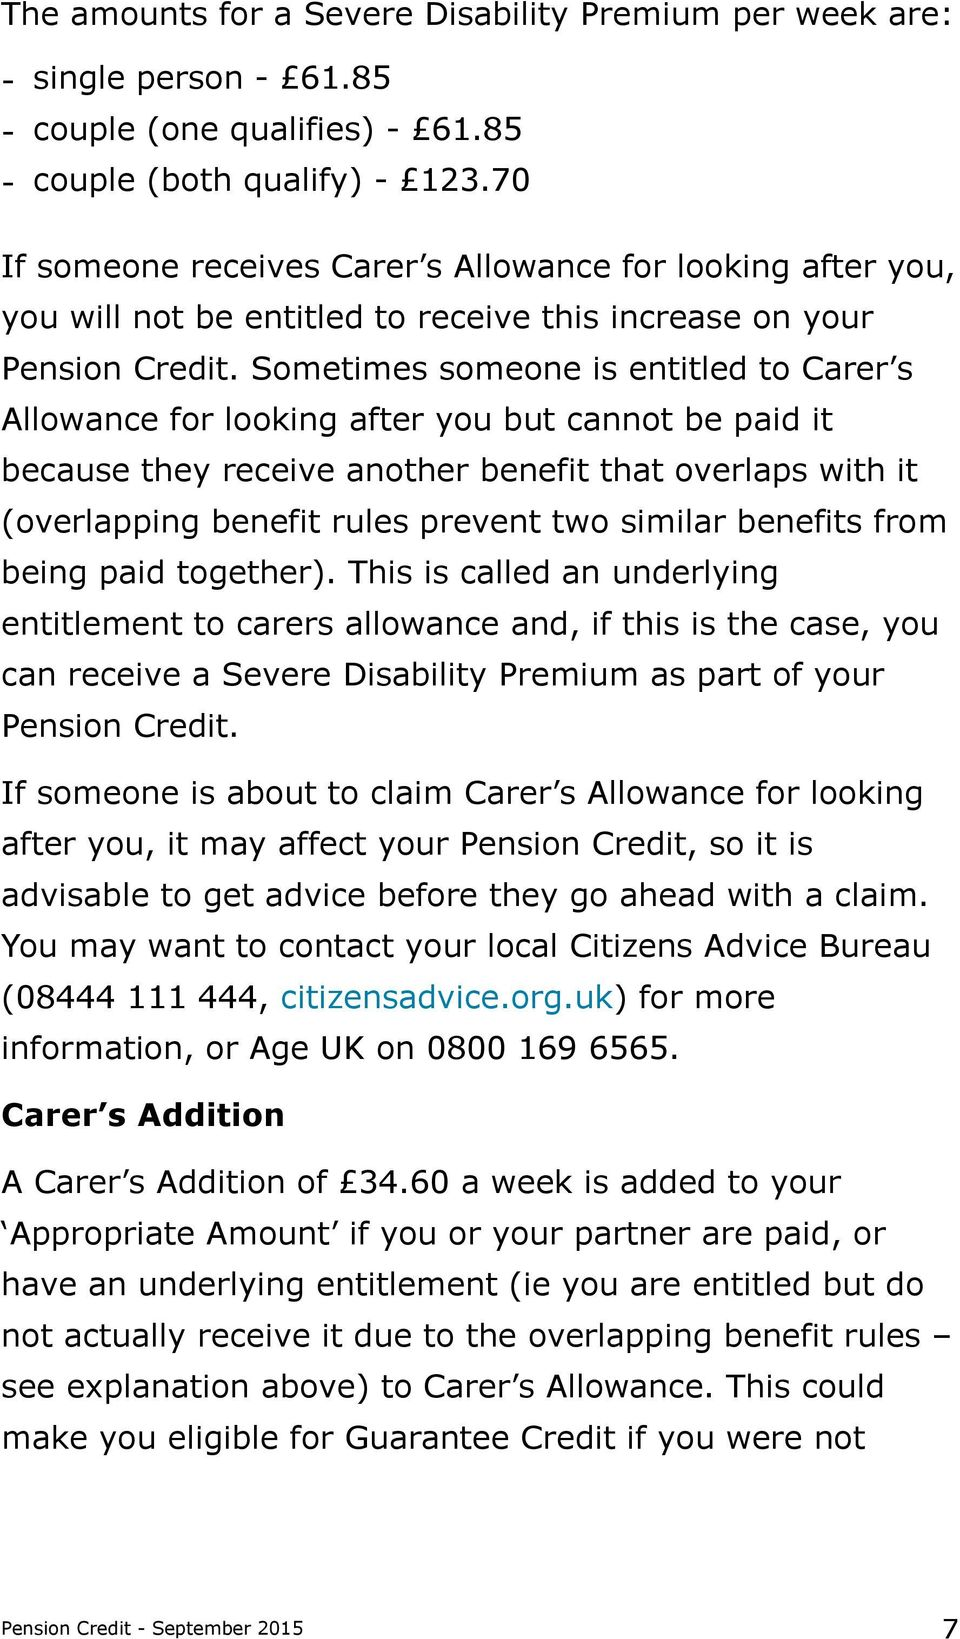 Sometimes someone is entitled to Carer s Allowance for looking after you but cannot be paid it because they receive another benefit that overlaps with it (overlapping benefit rules prevent two